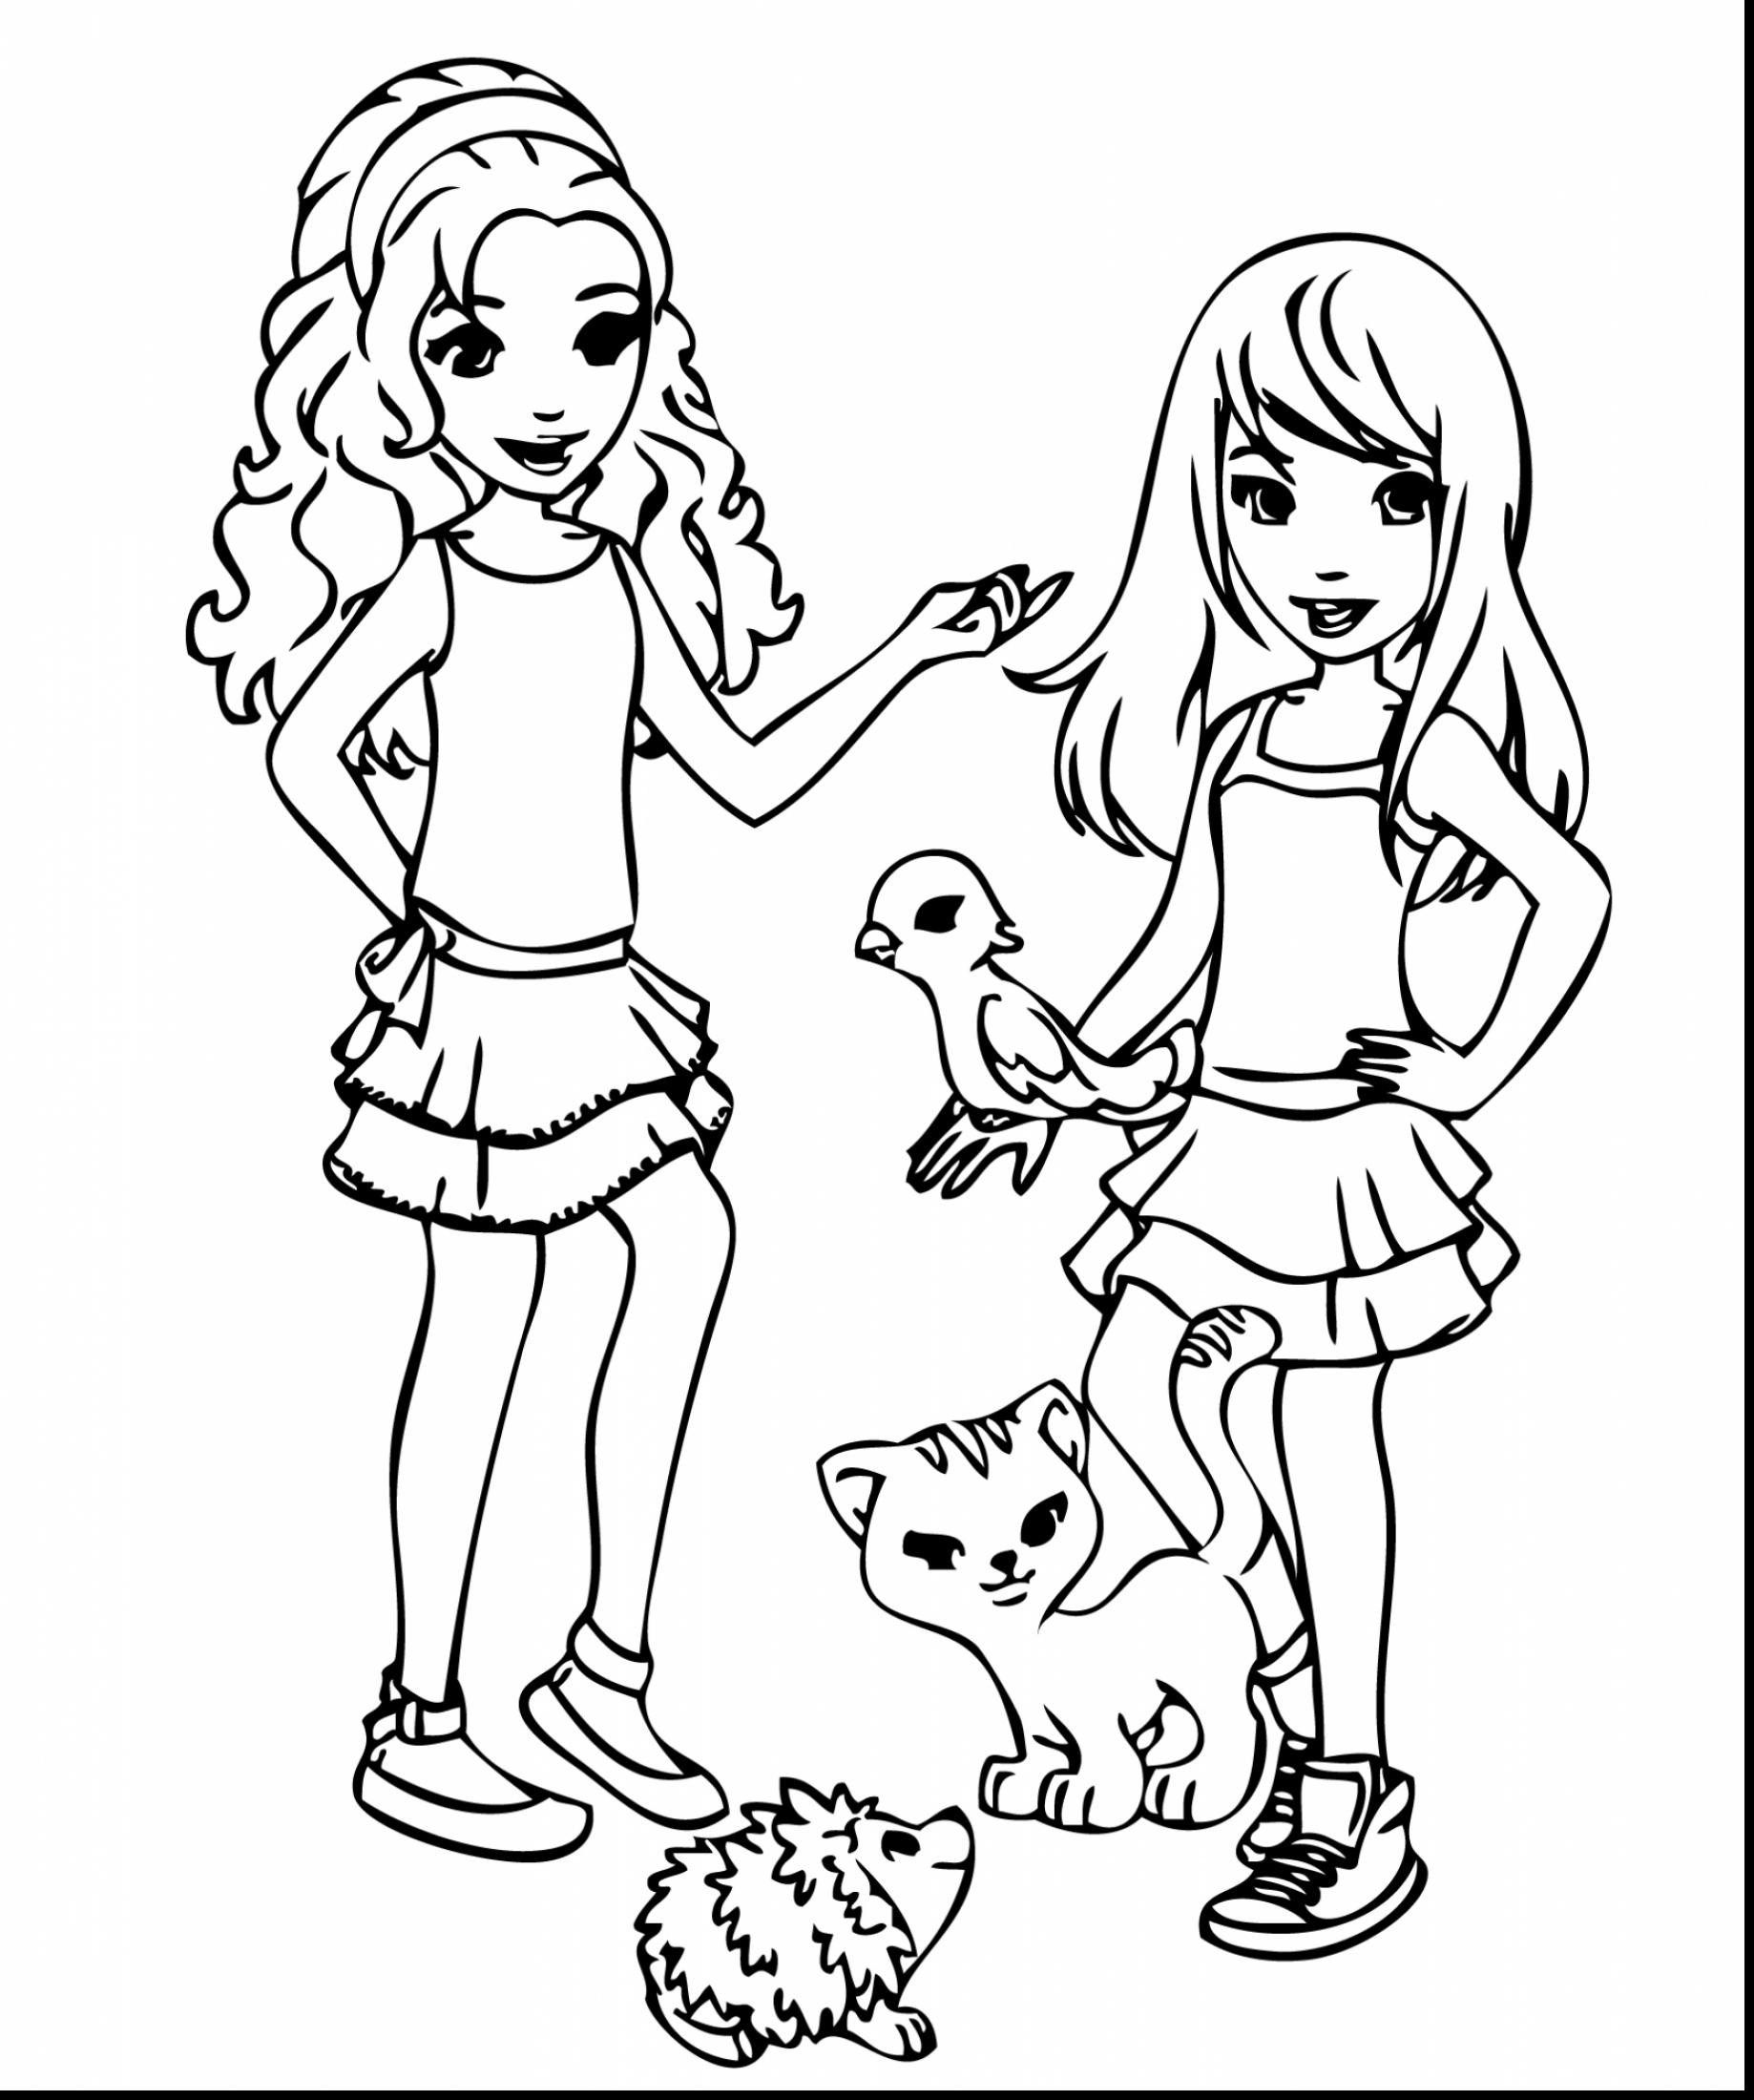 Little Live Pets Coloring Pages Free Http Www Wallpaperartdesignhd Us Little Live Pets Coloring Pages Lego Coloring Pages Lego Coloring Lego Friends Birthday